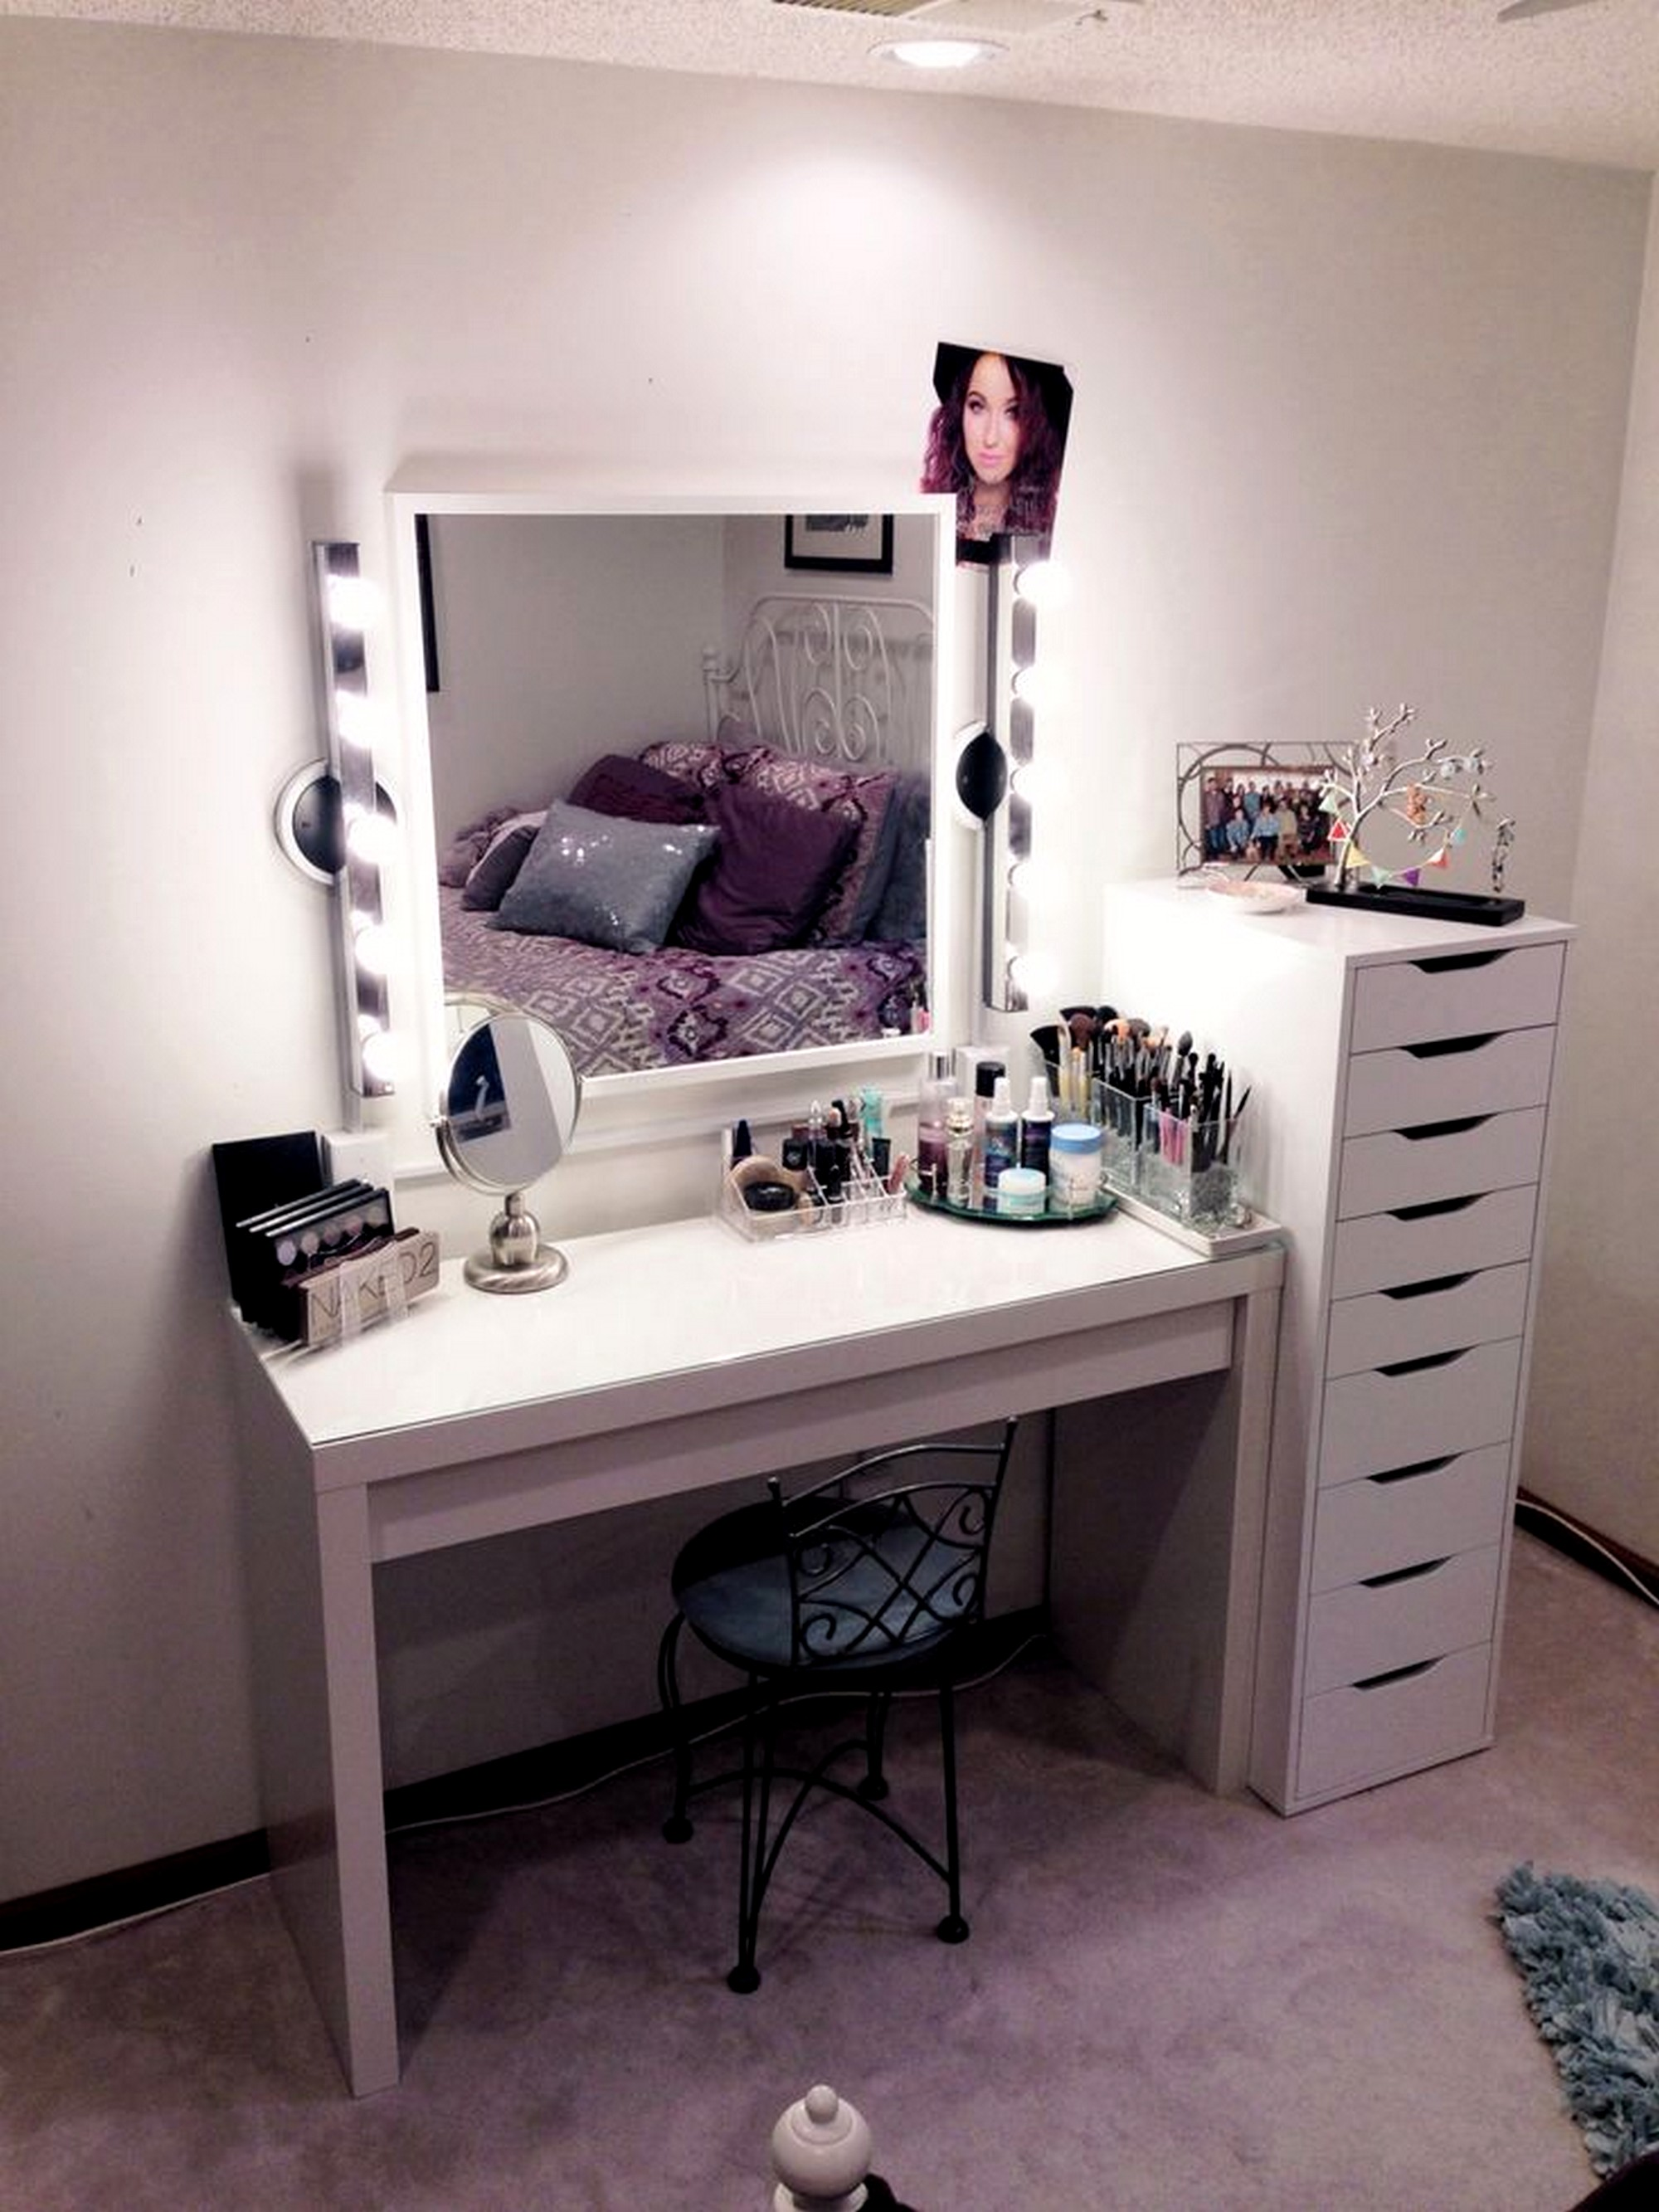 cheap-furniture-ikea-vanity-hollywood-set-ideas-for-girl-with-white-gloss-paint-wooden-makeup-table-and-lighted-bulb-on-square-mirror-framed-plus-small-black-iron-vanity-chairs